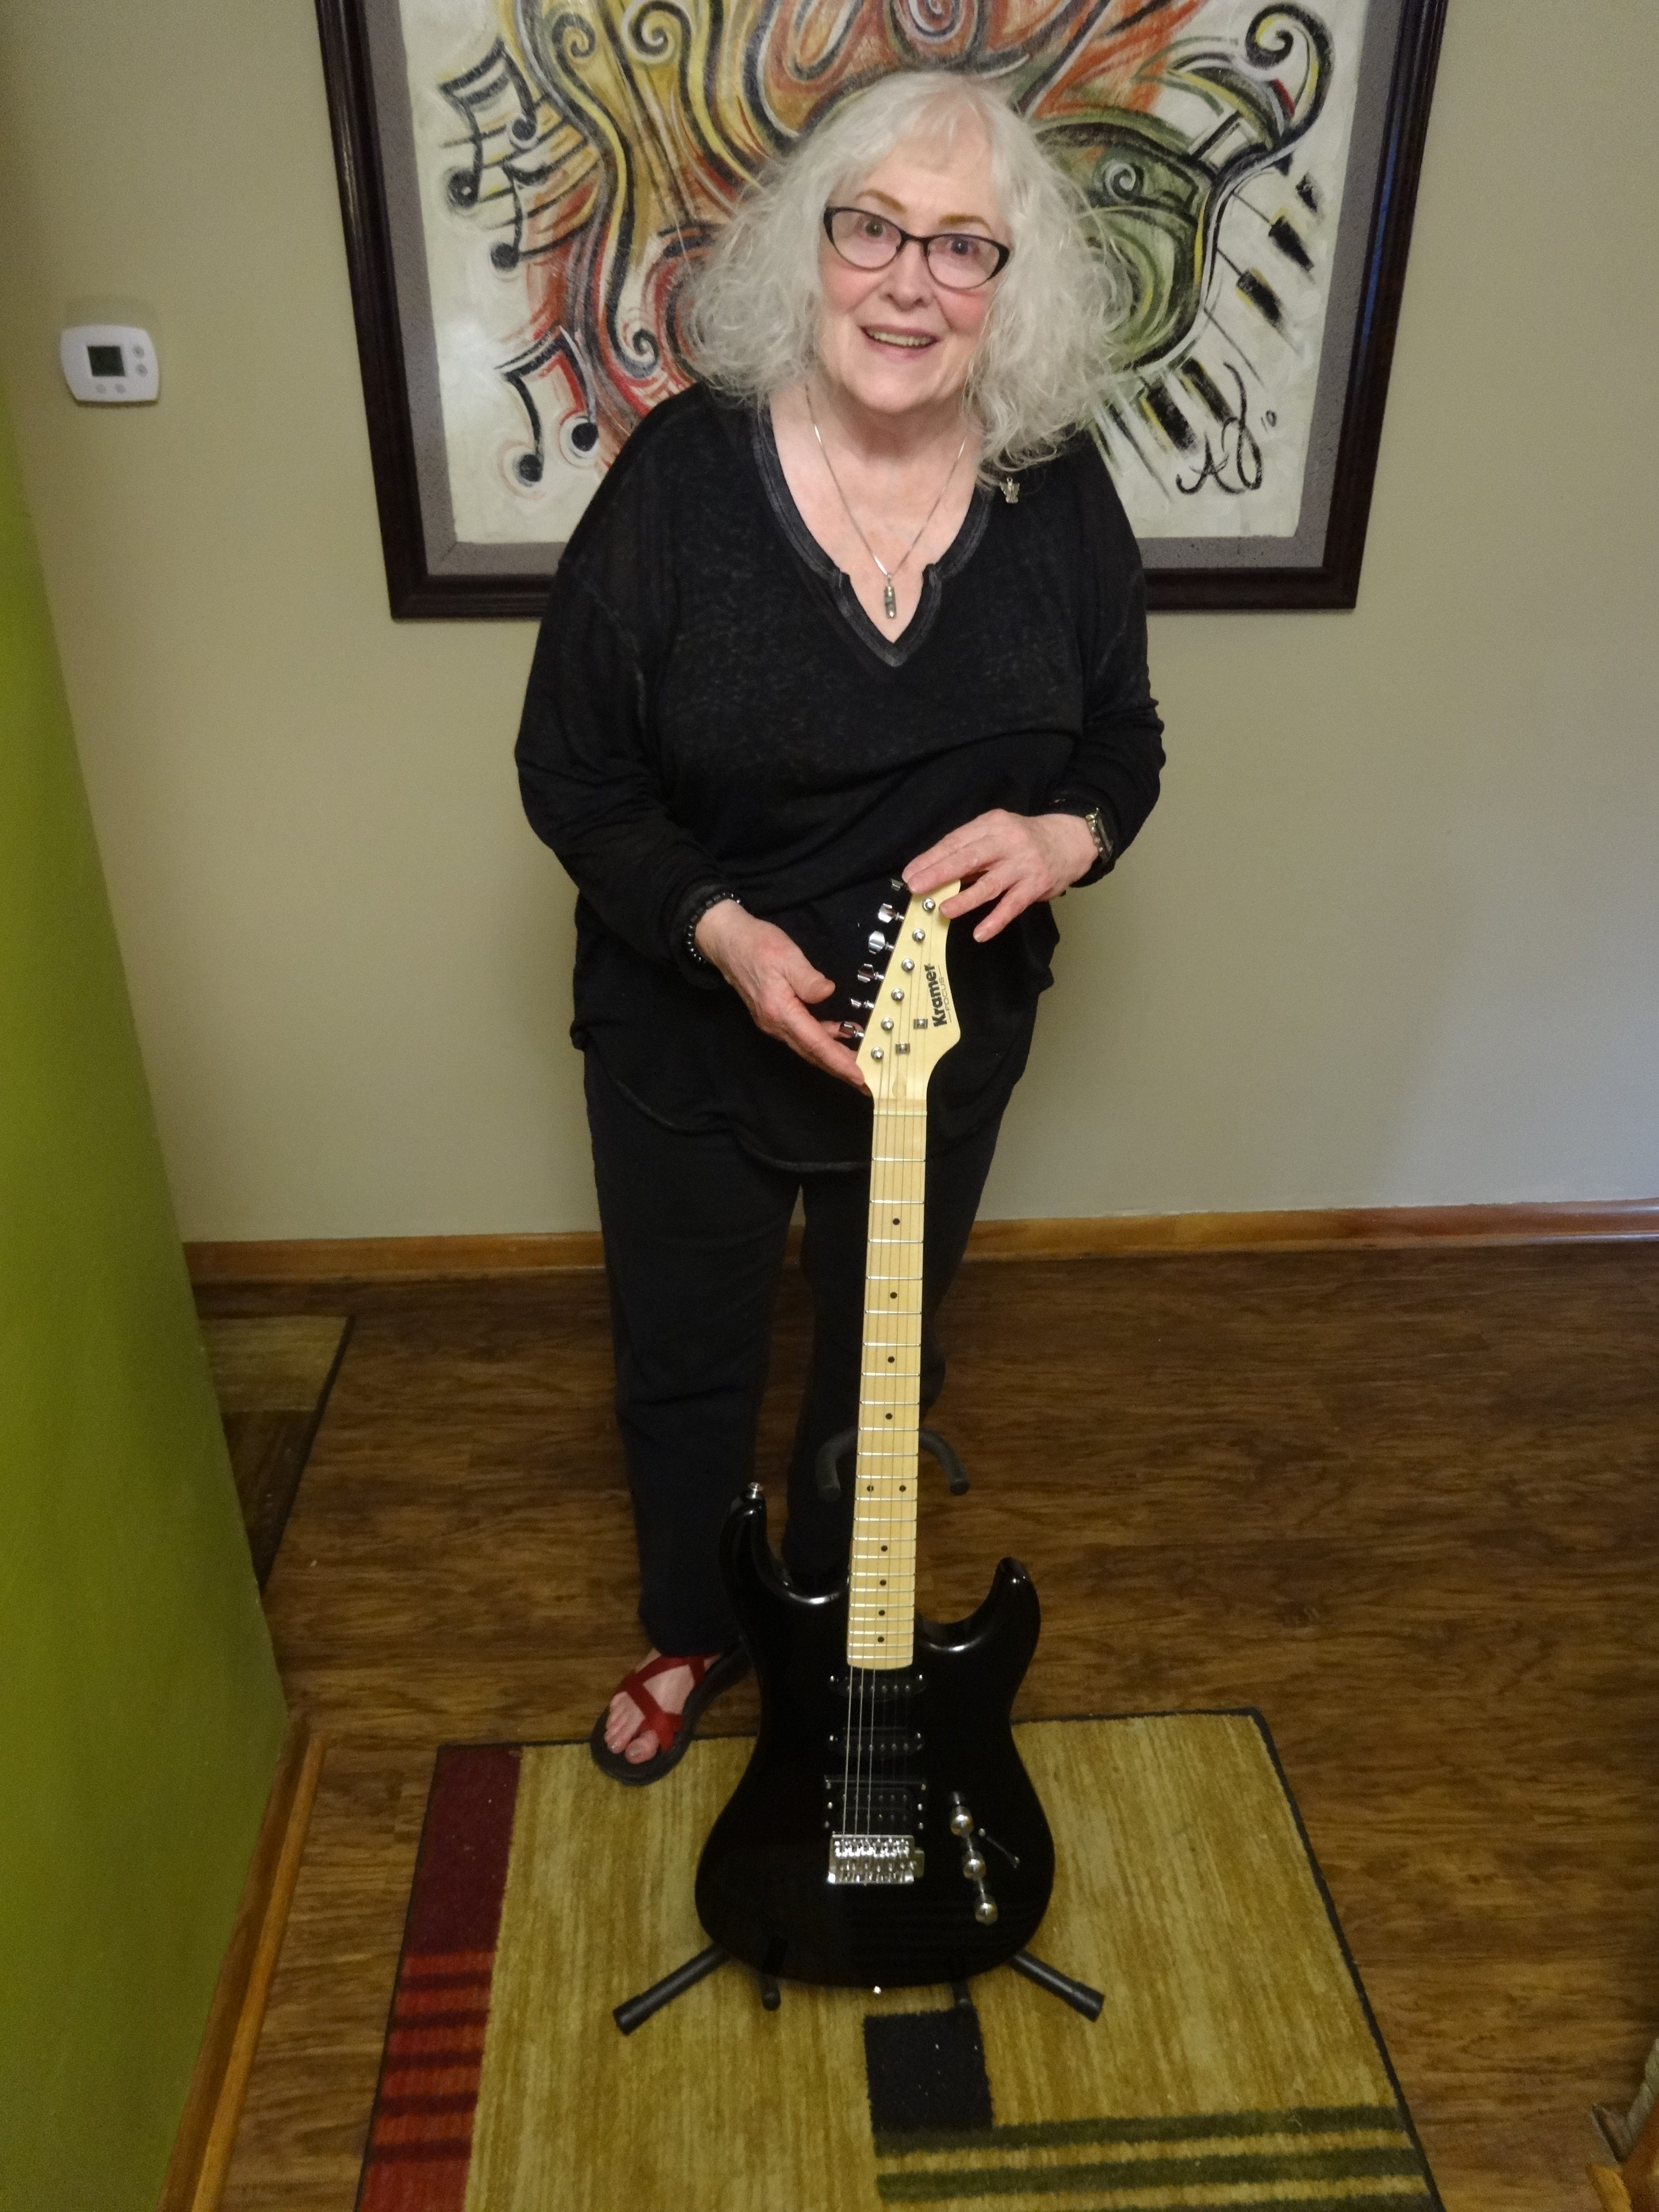 Carol Wiercinski shows one of the guitars that will be auctioned off at Treystock, the annual benefit rock concert honoring her son, Trey Filer.